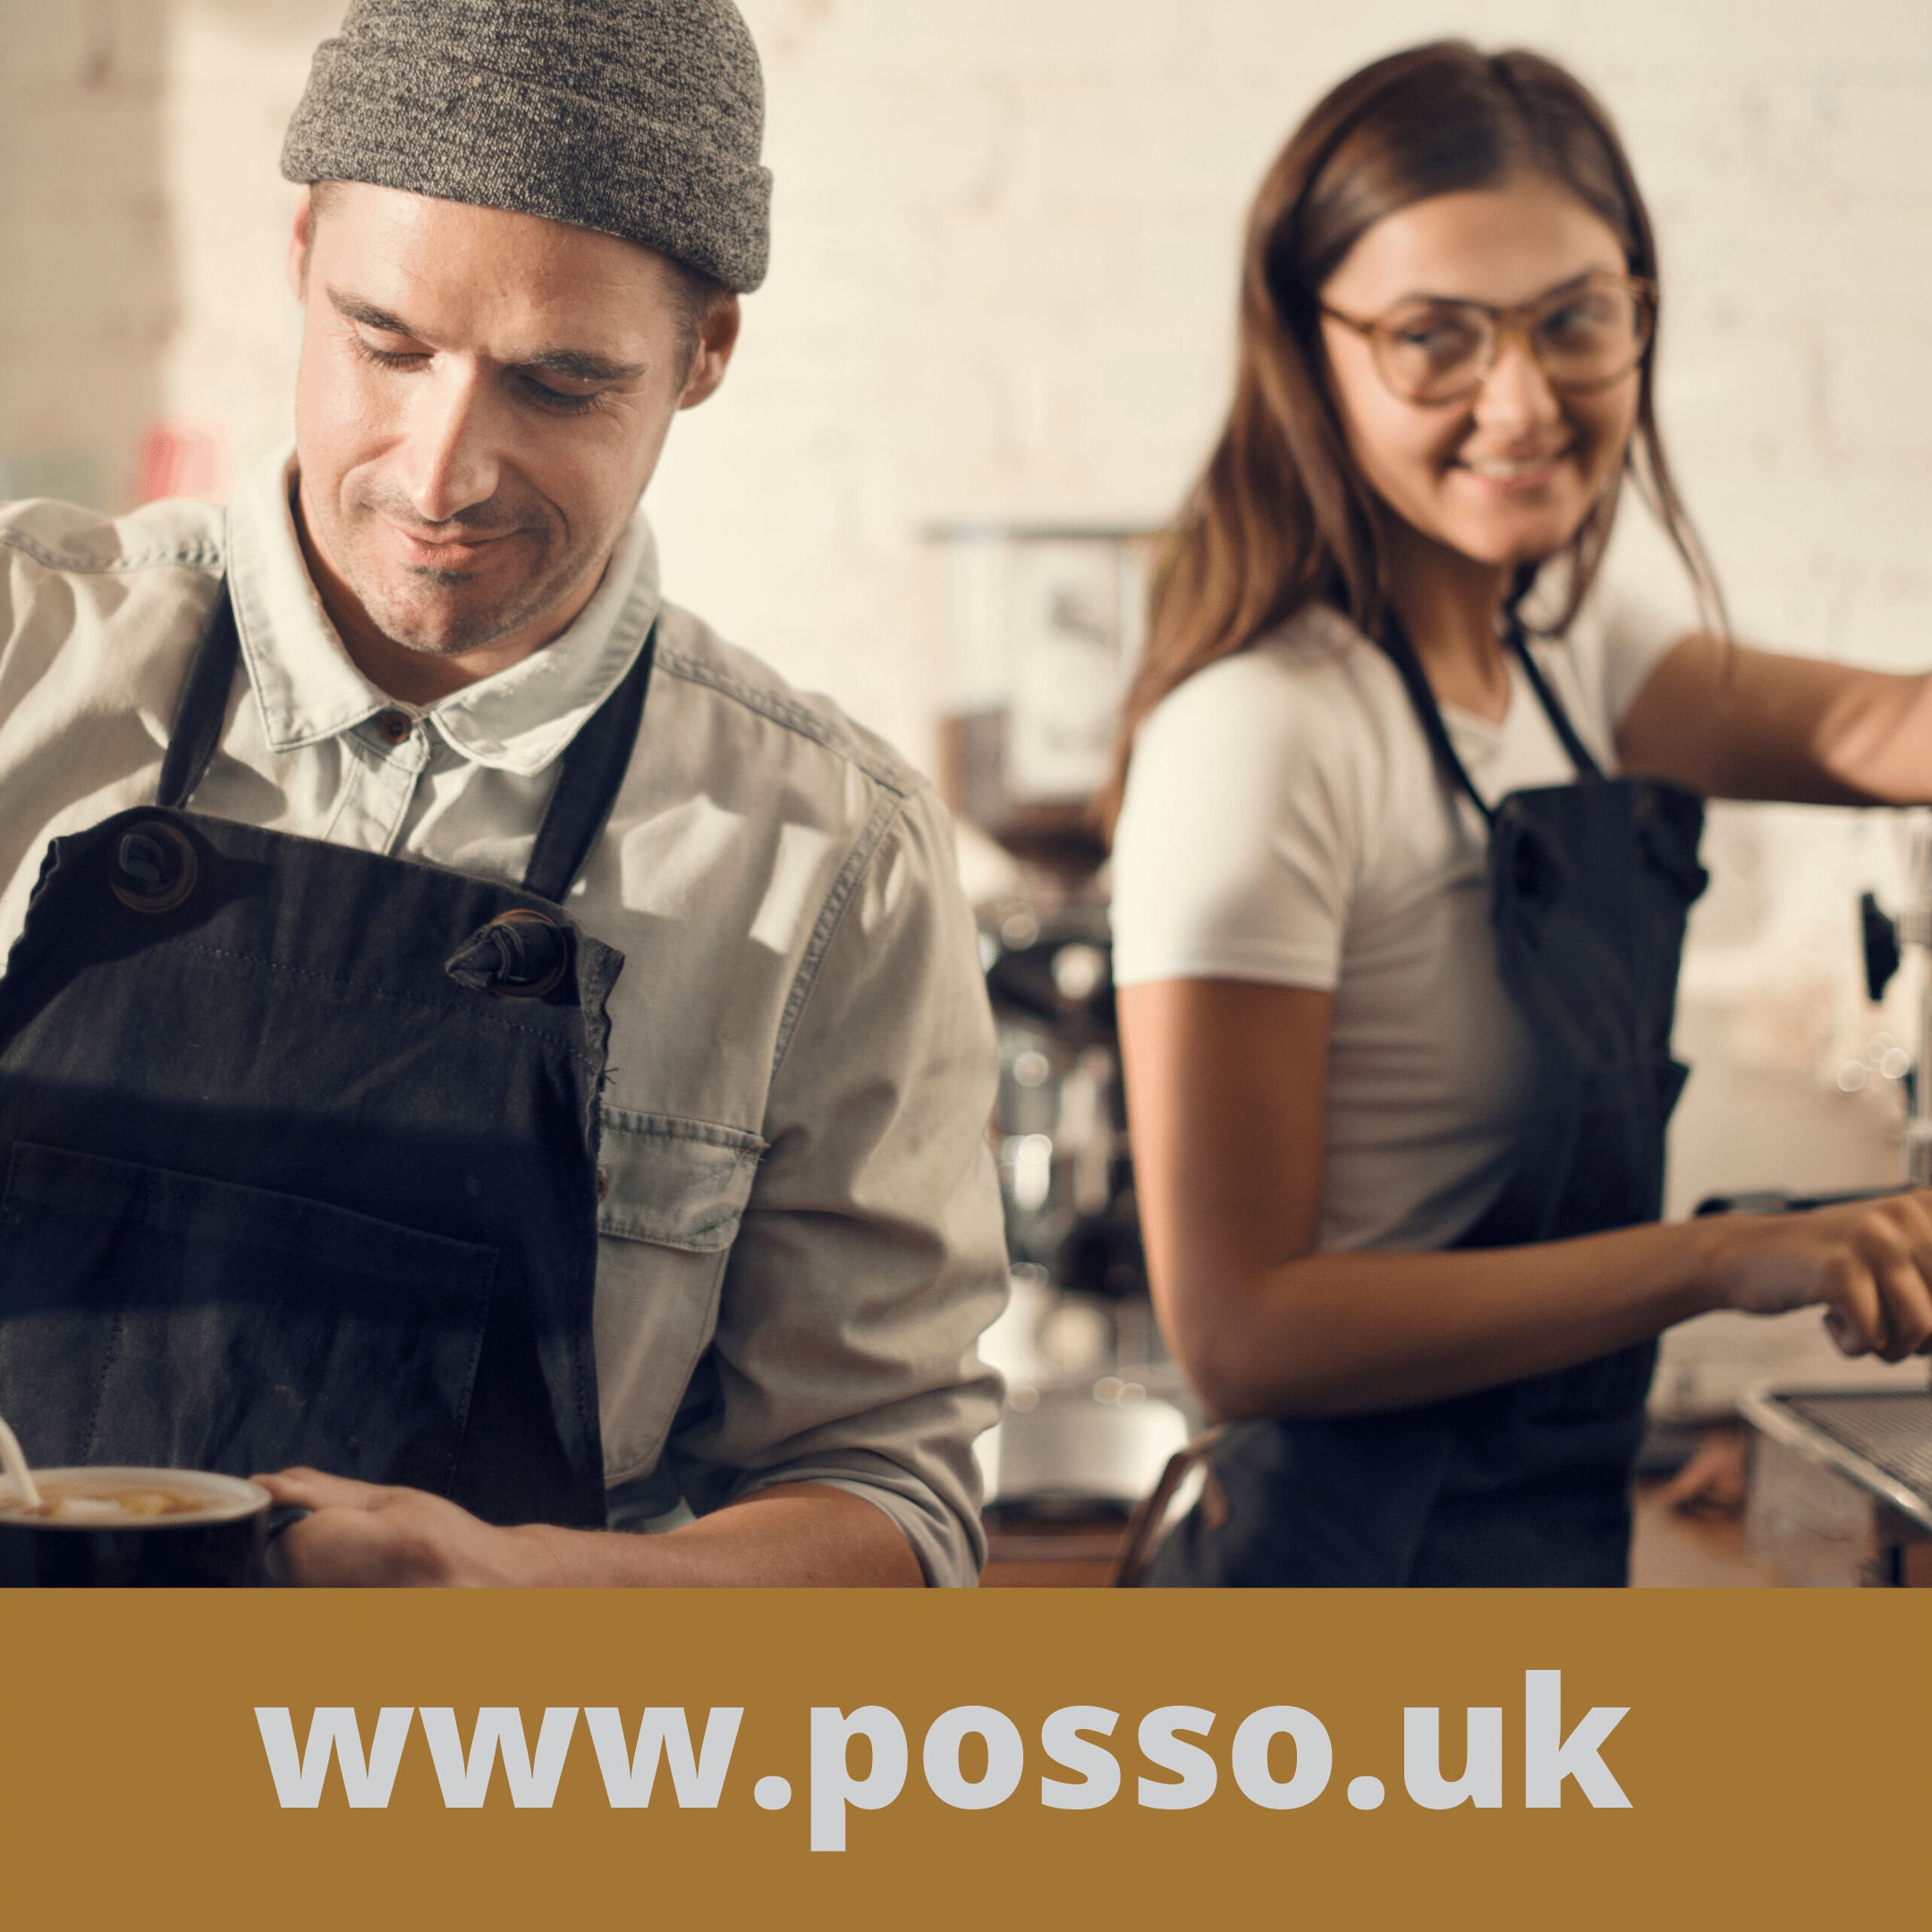 On-Line ordering and apps by Posso